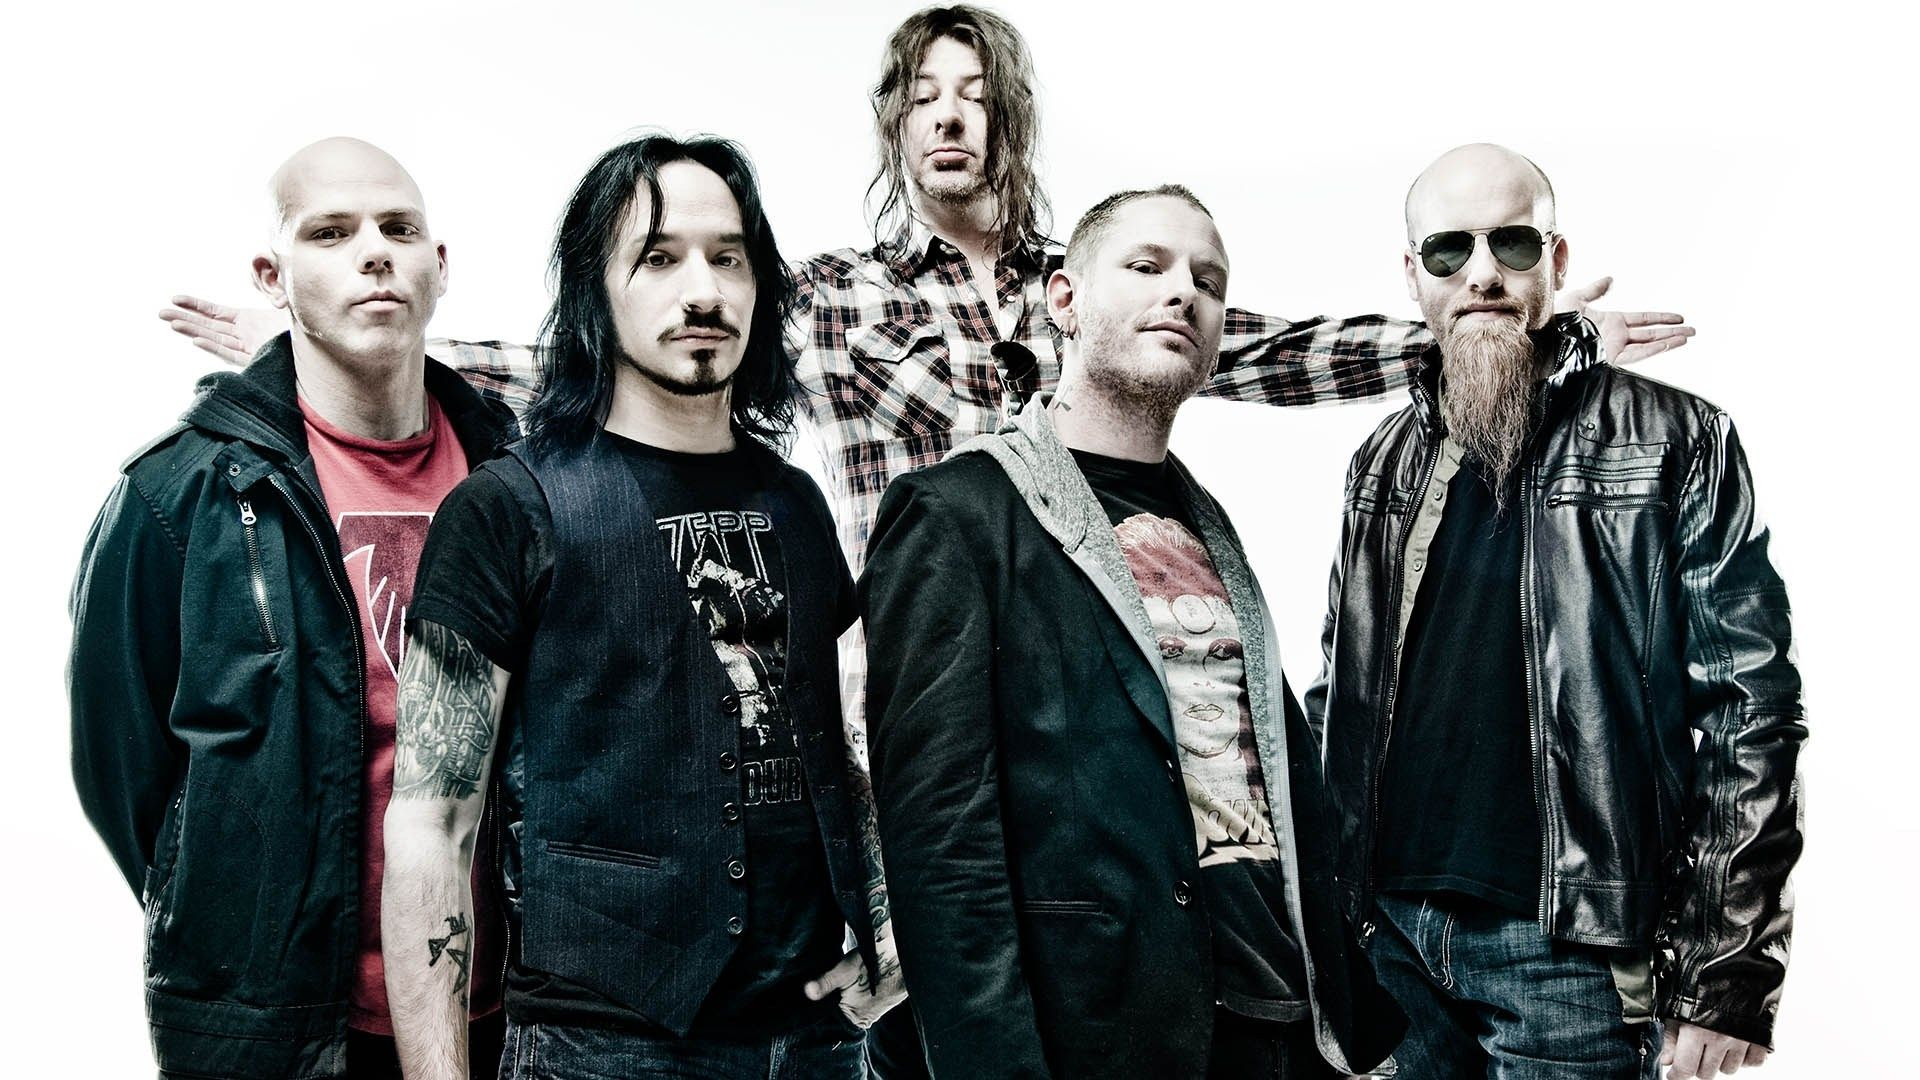 stone sour picture free, 1920x1080 (390 kB)